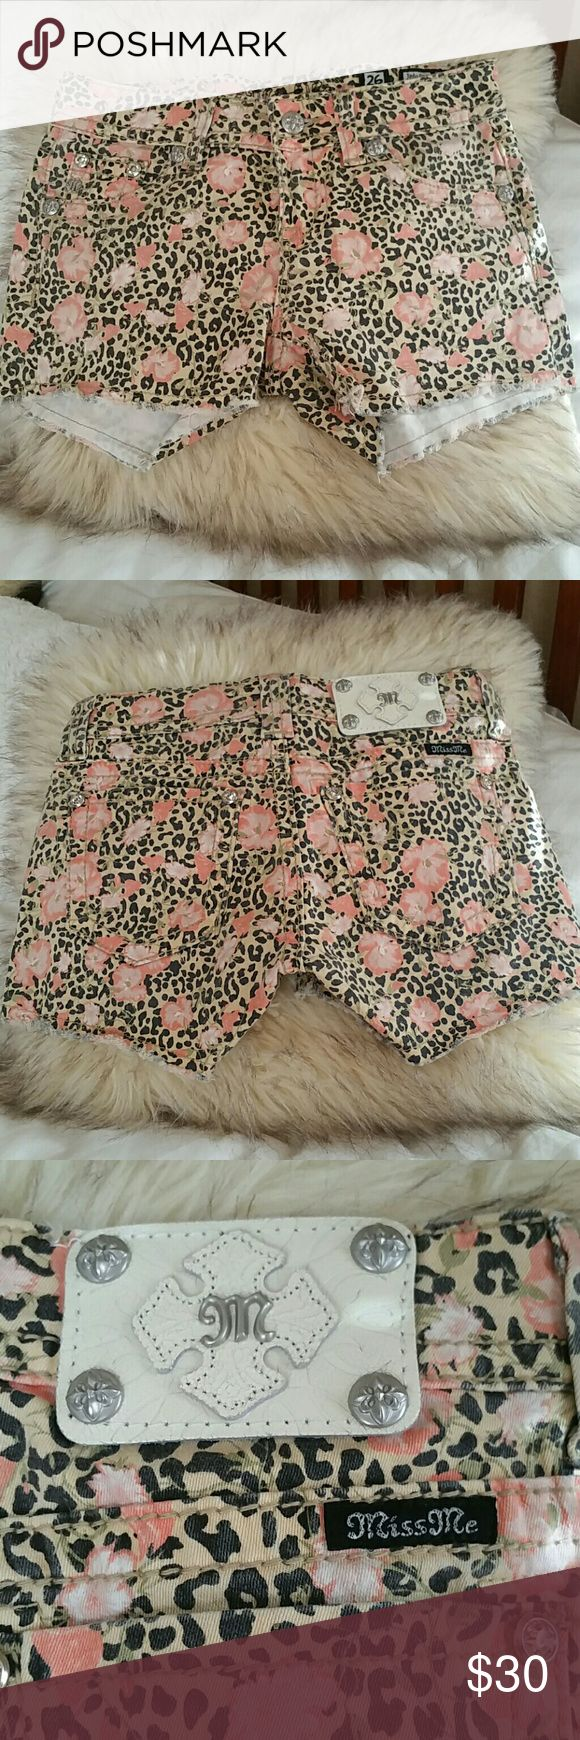 Miss Me cheetah shorts size 26 Excellent like new condition, worn once for a few hours! Super cute cheetah print with coral colored flower design! Get ready for spring and summer with these! Miss Me Shorts Jean Shorts